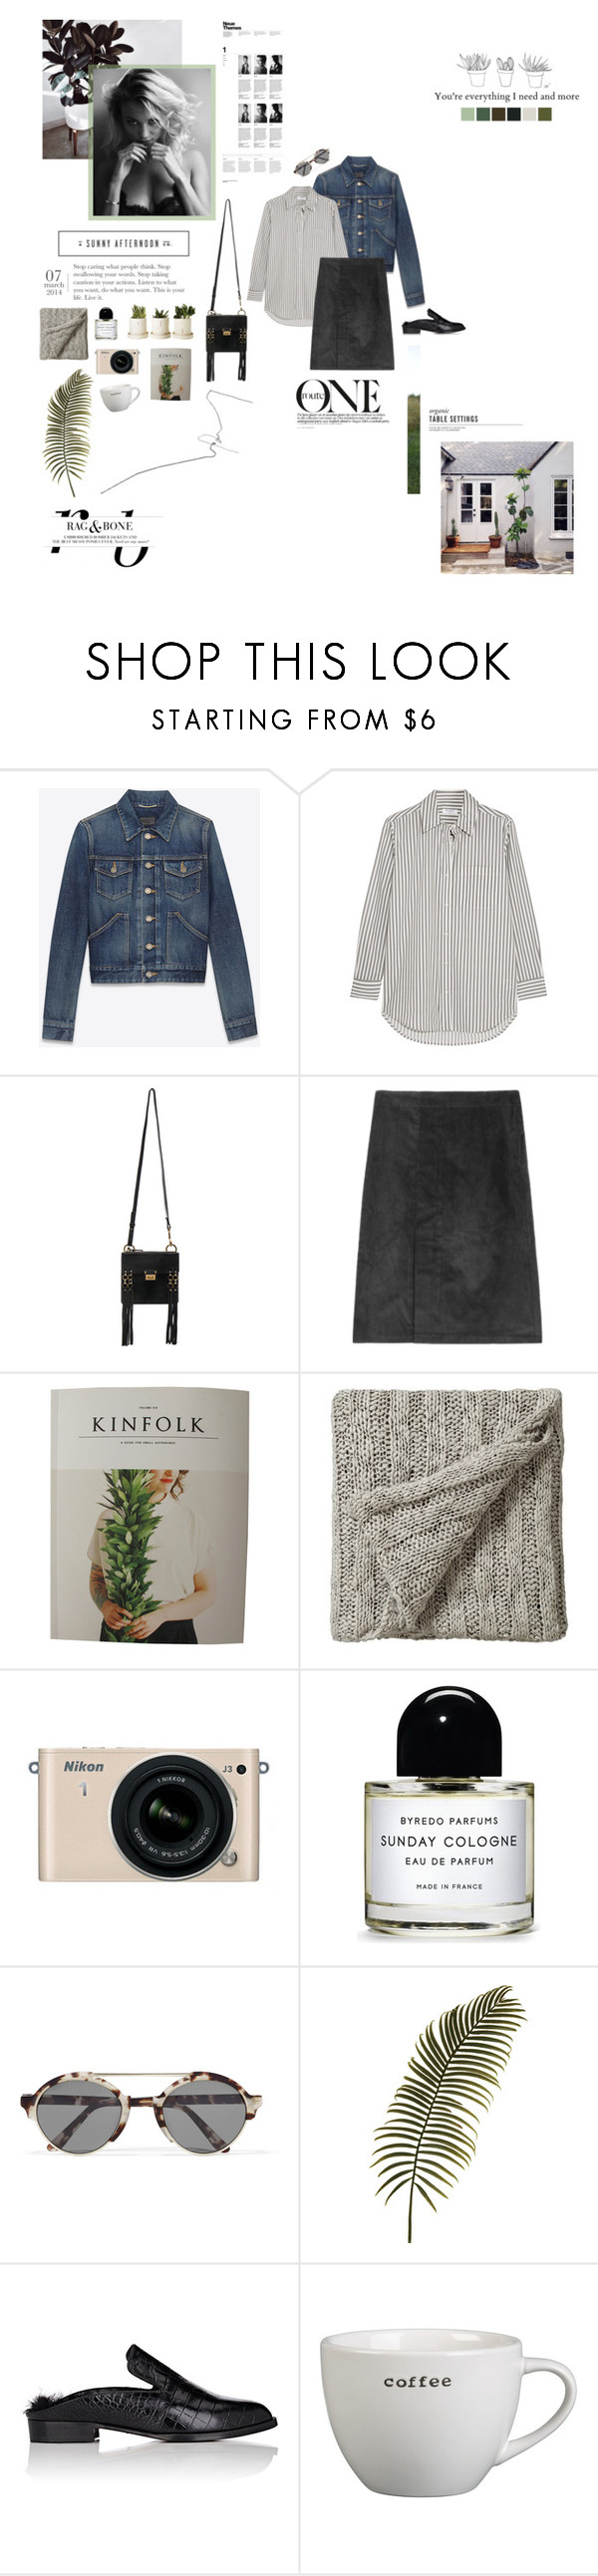 """""""You're everything I need and more."""" by sarahstardom ❤ liked on Polyvore featuring Yves Saint Laurent, Equipment, Chloé, Bedeck, Nikon, Byredo, Illesteva, Robert Clergerie and Crate and Barrel"""